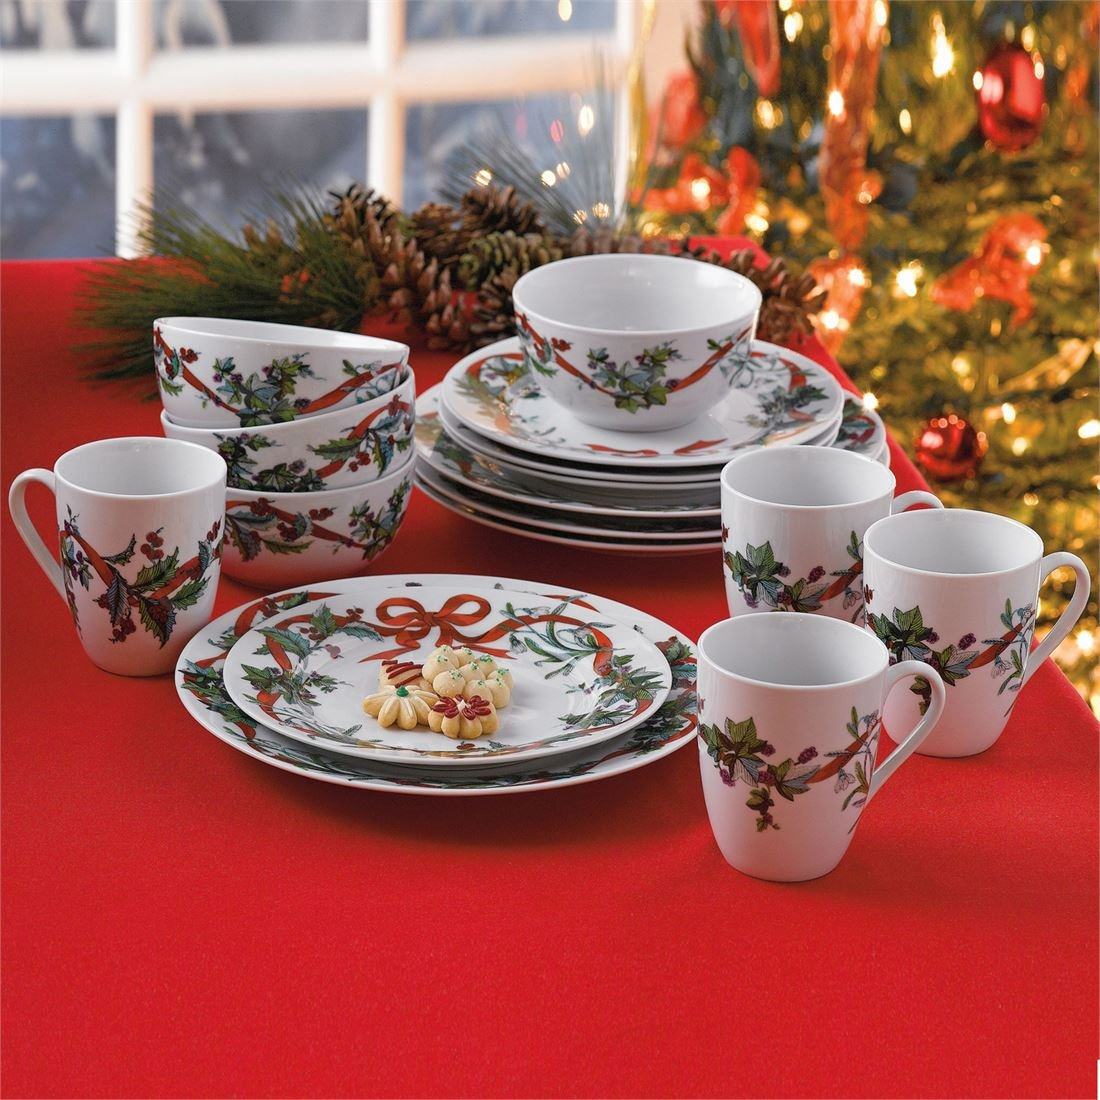 Christmas Holly Dinnerware Sets